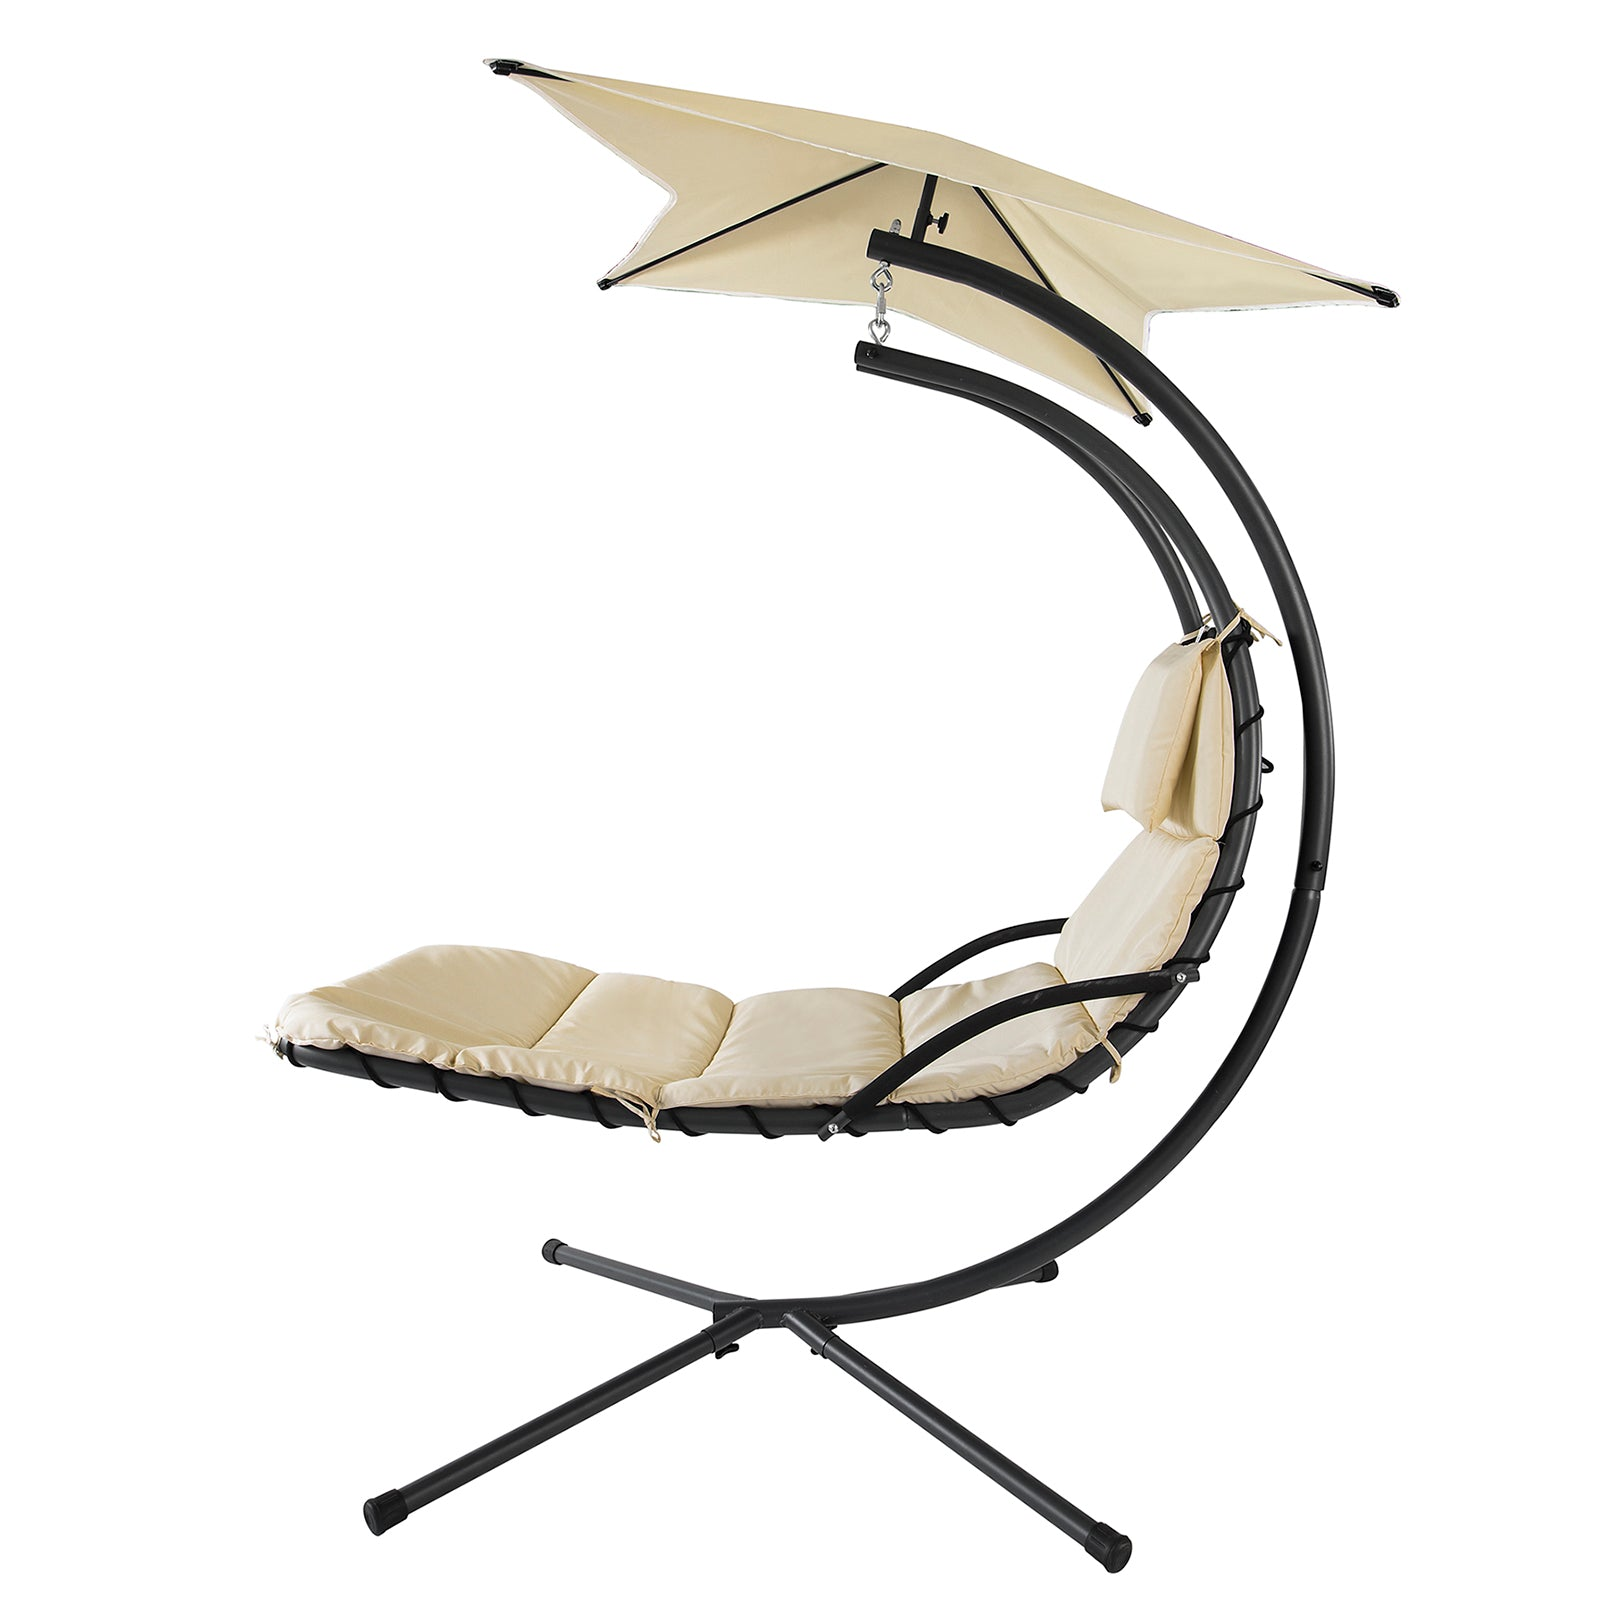 SoBuy Garden and Home Rocking Chair Metal Sun Lounger with Leaf Roof and Cushion Included OGS39-MI